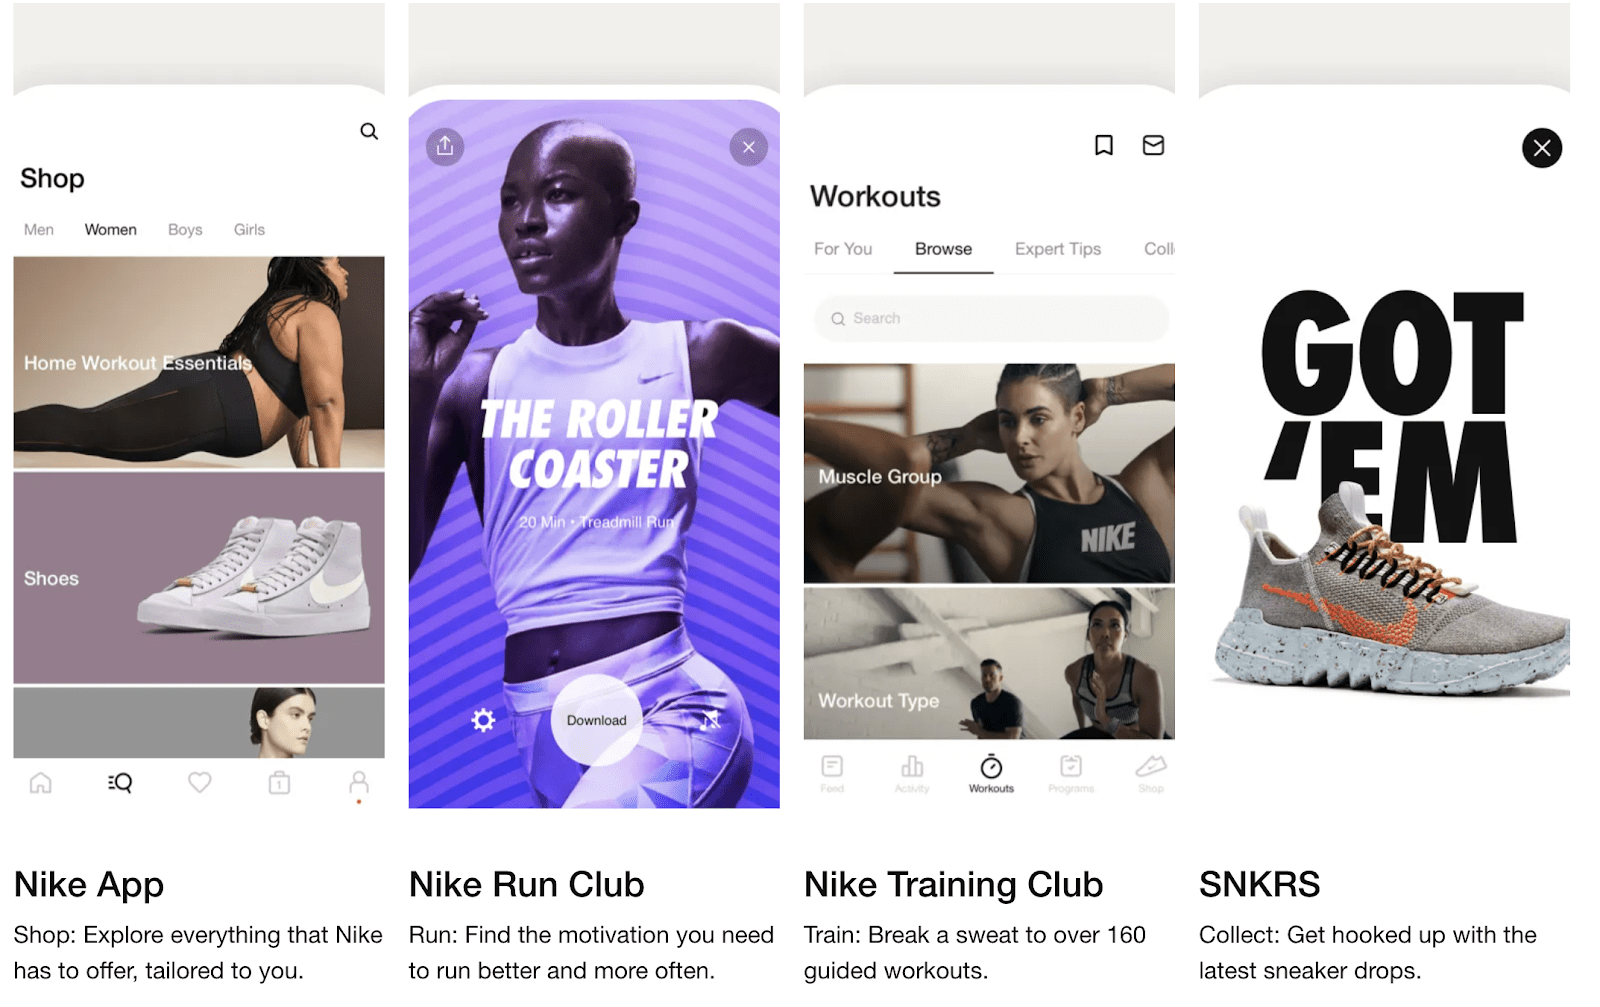 Nike's loyalty program is a great example of how partner benefits and cross-brand promotions can elevate the loyalty concept.